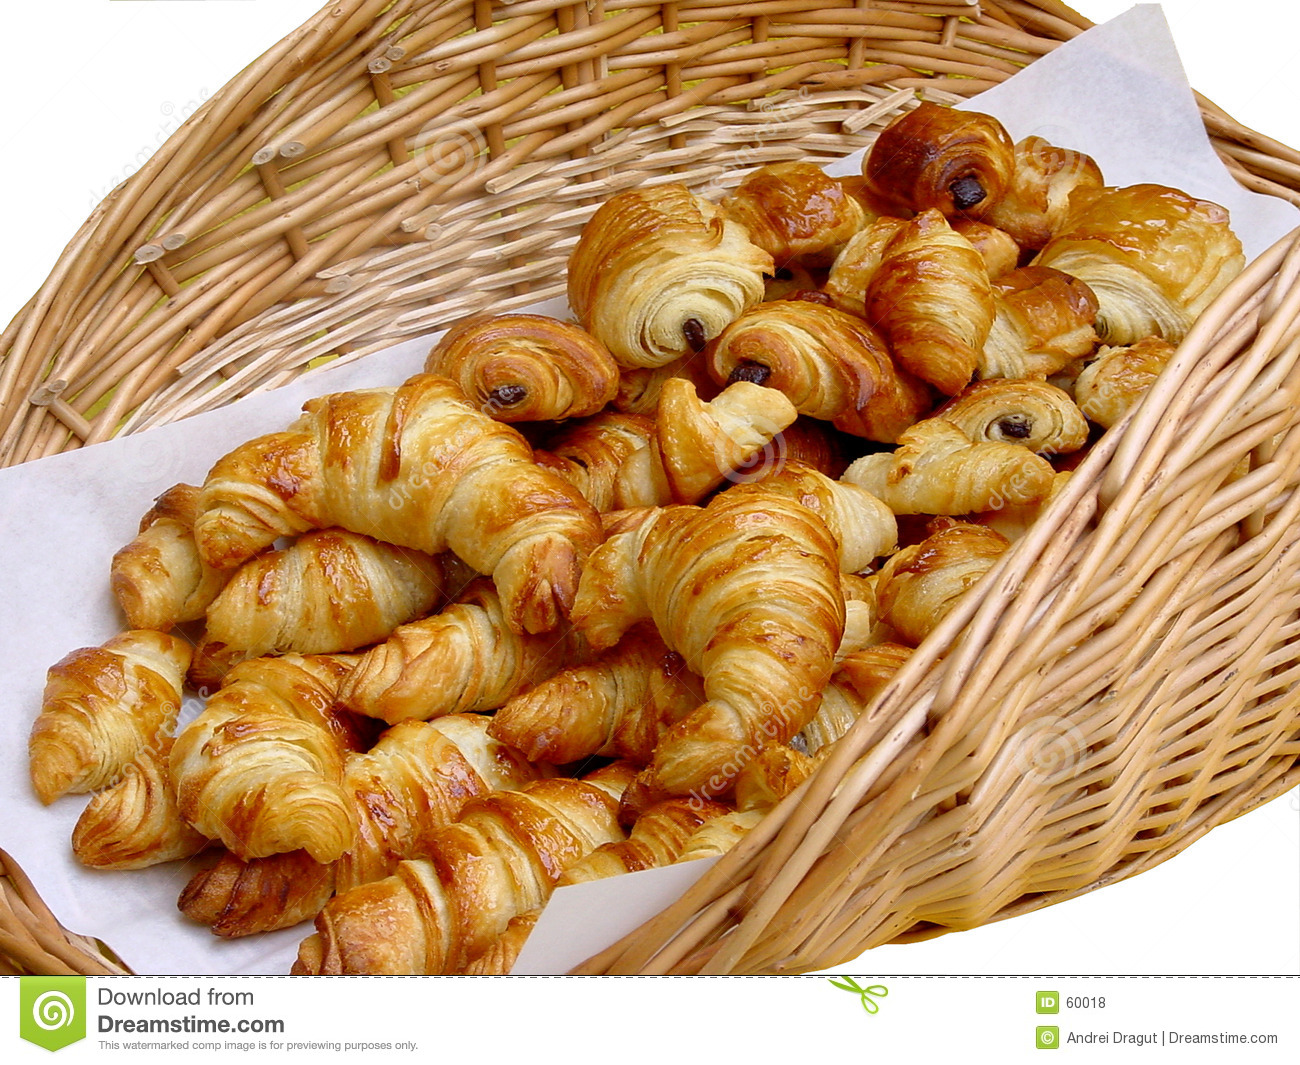 http://thumbs.dreamstime.com/z/croissants-60018.jpg